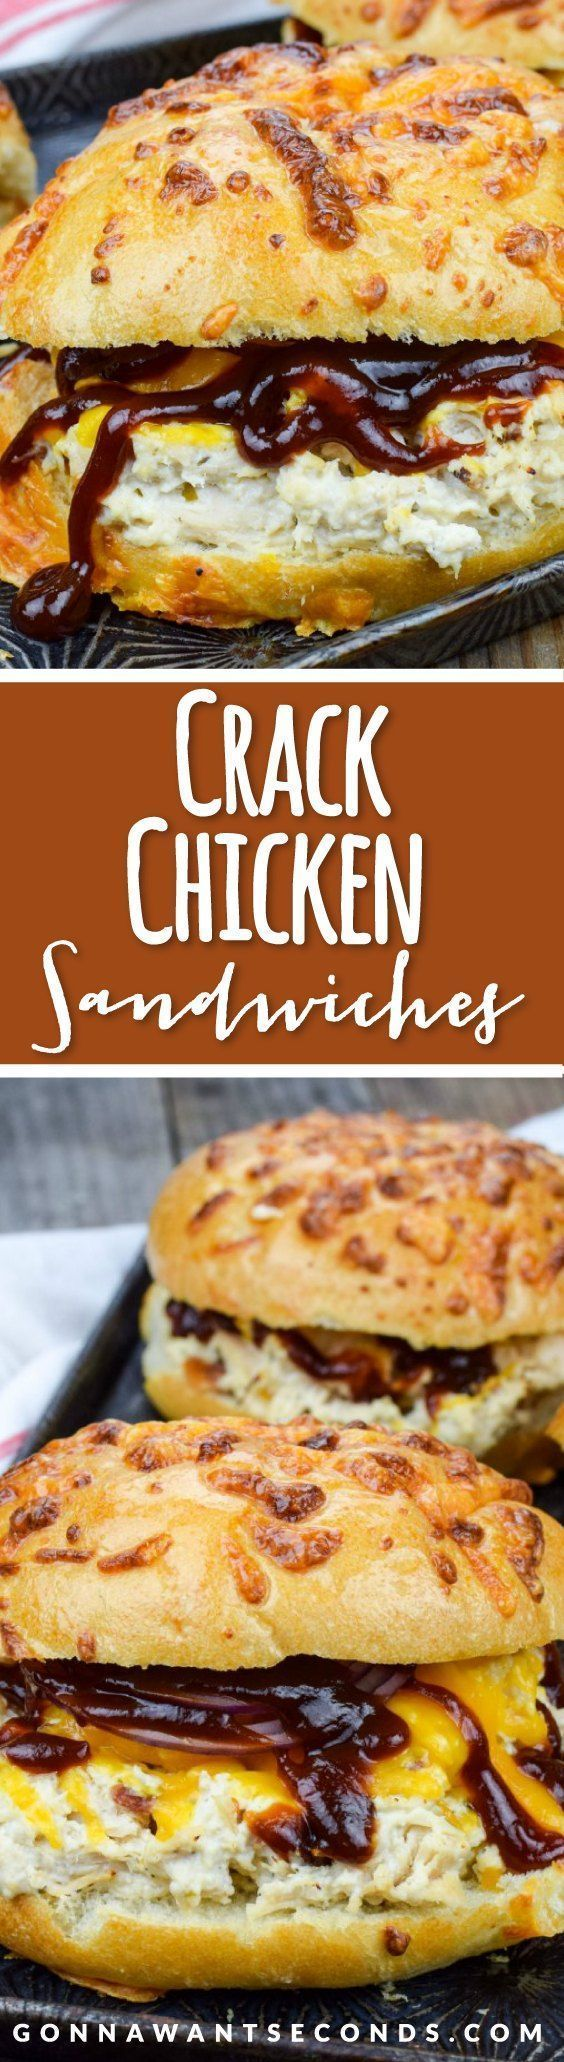 This super simple Crack Chicken recipe is cooked in the crockpot and makes the most amazing, creamy,  flavorful chicken filling for hearty sandwiches.